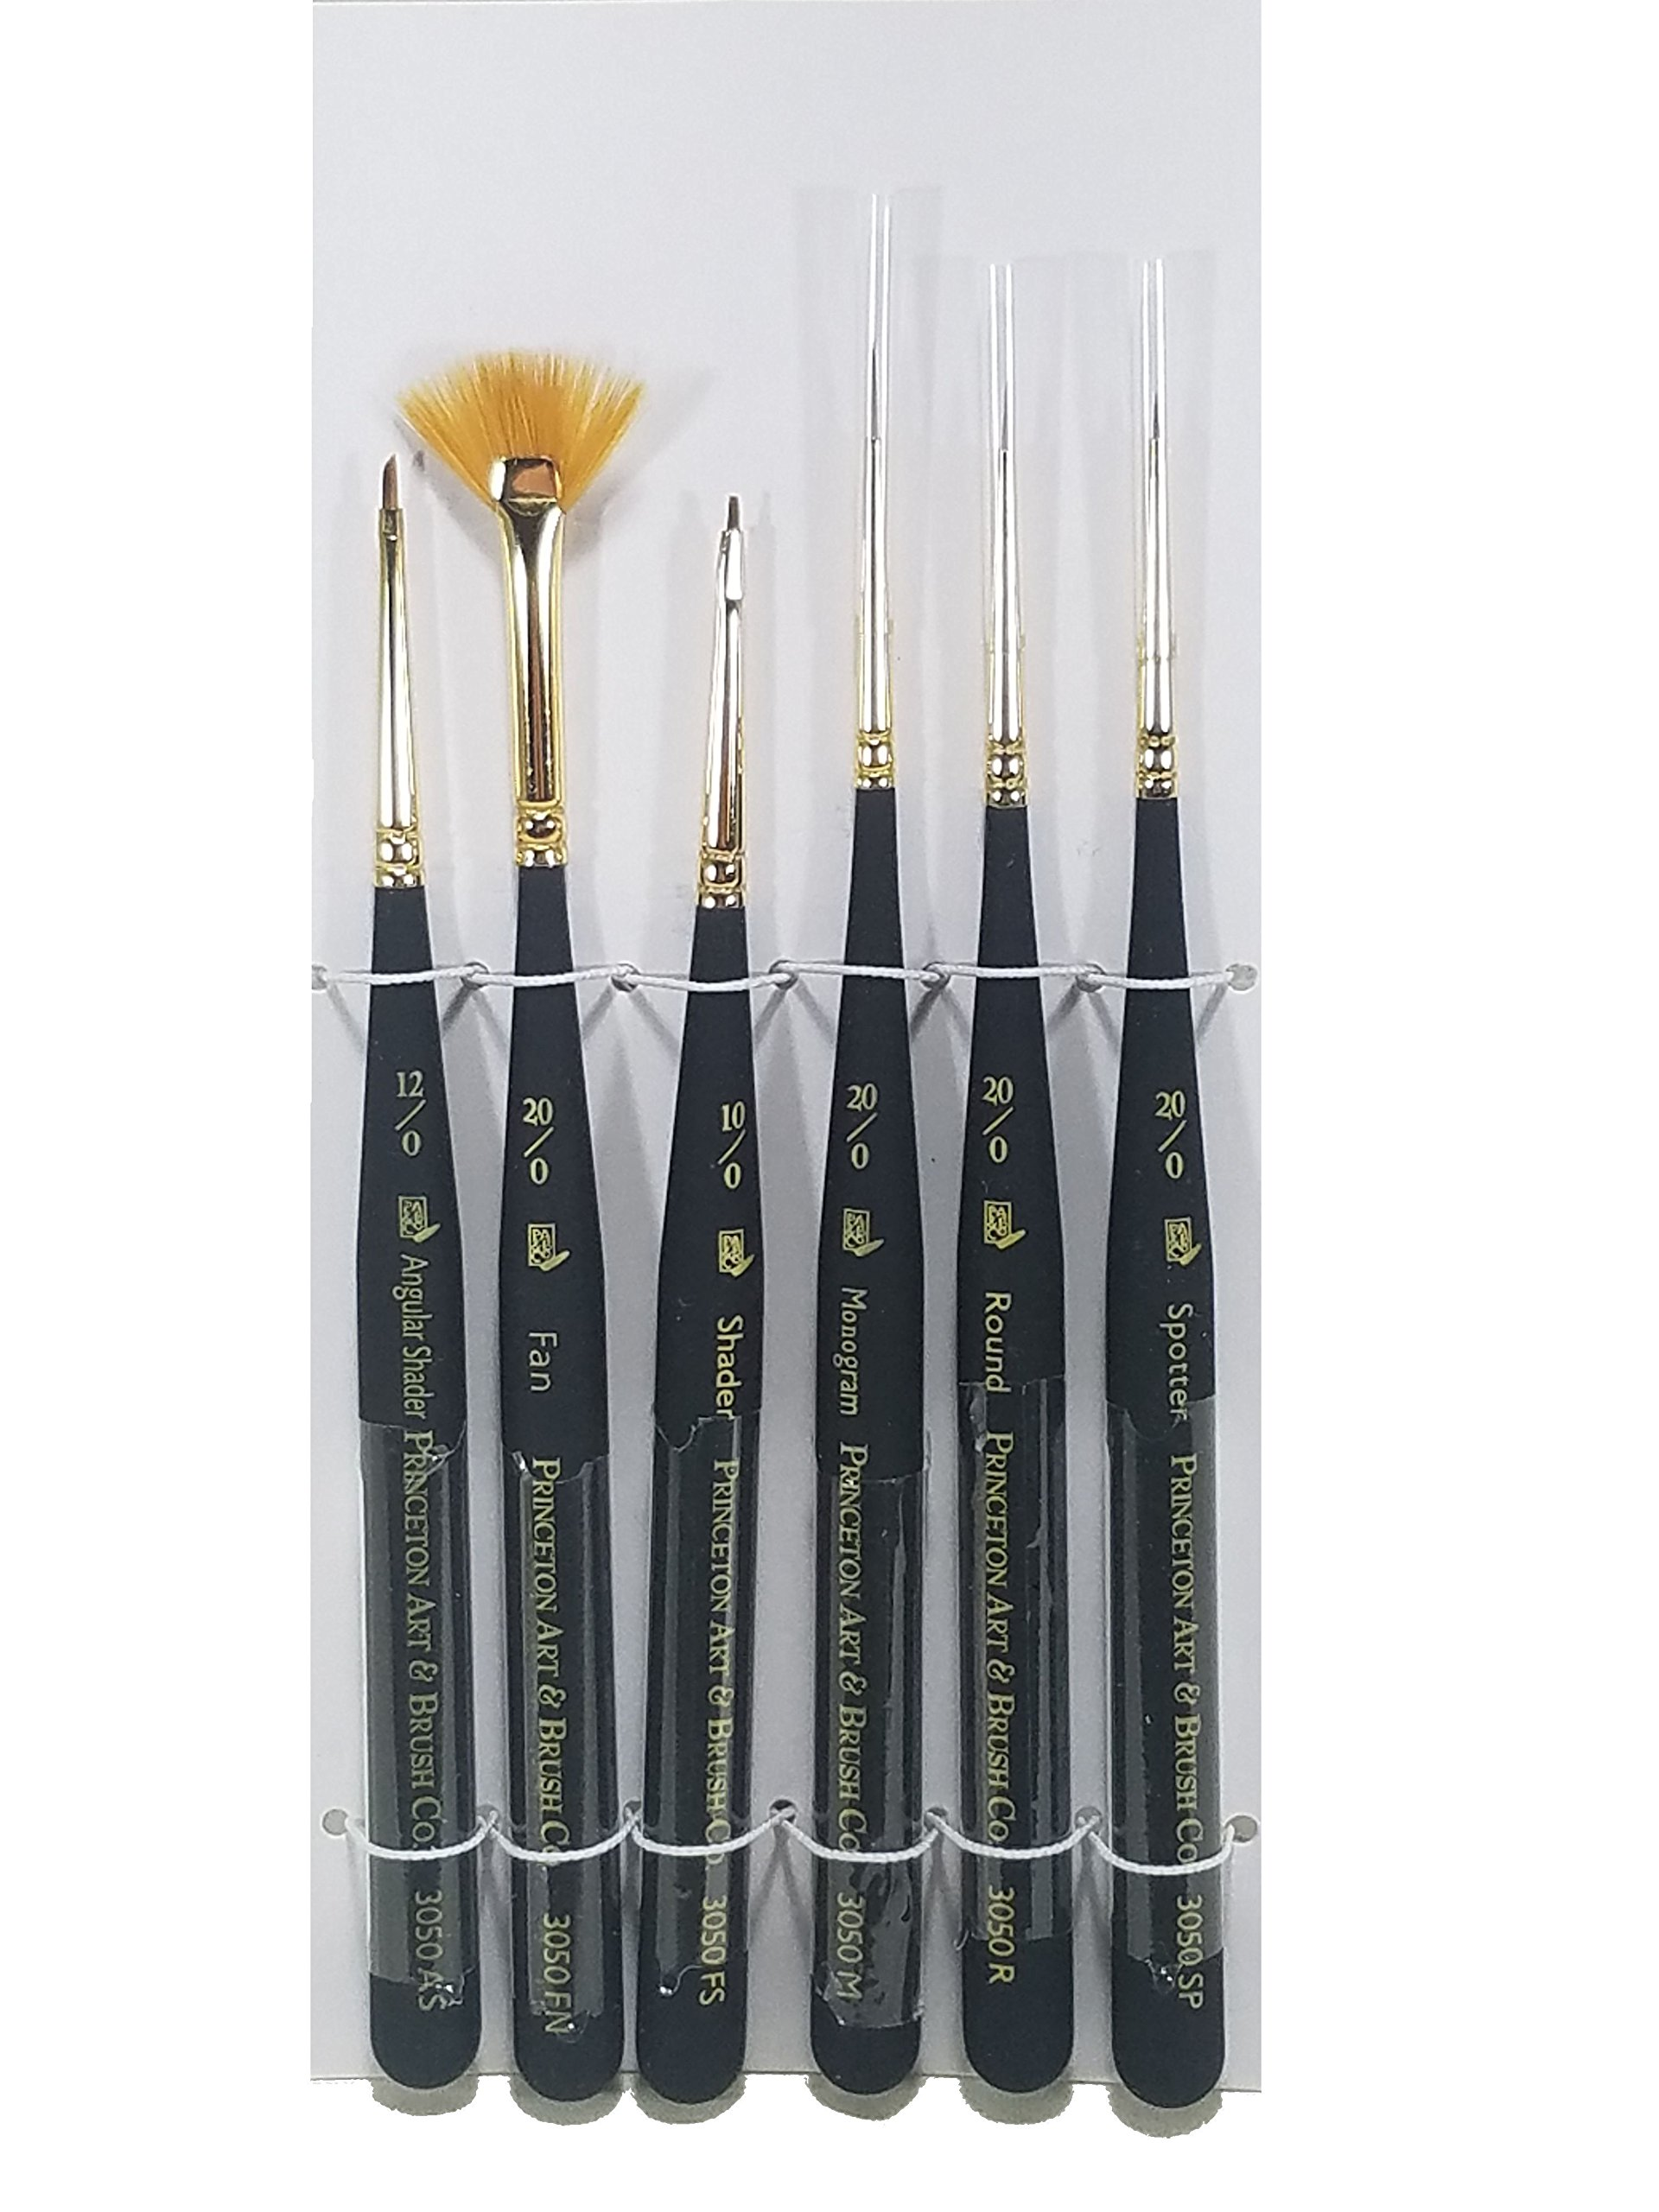 Princeton Series 3050 Mini Detailer Synthetic Sable 6 Piece Brush Set by Princeton Art & Brush